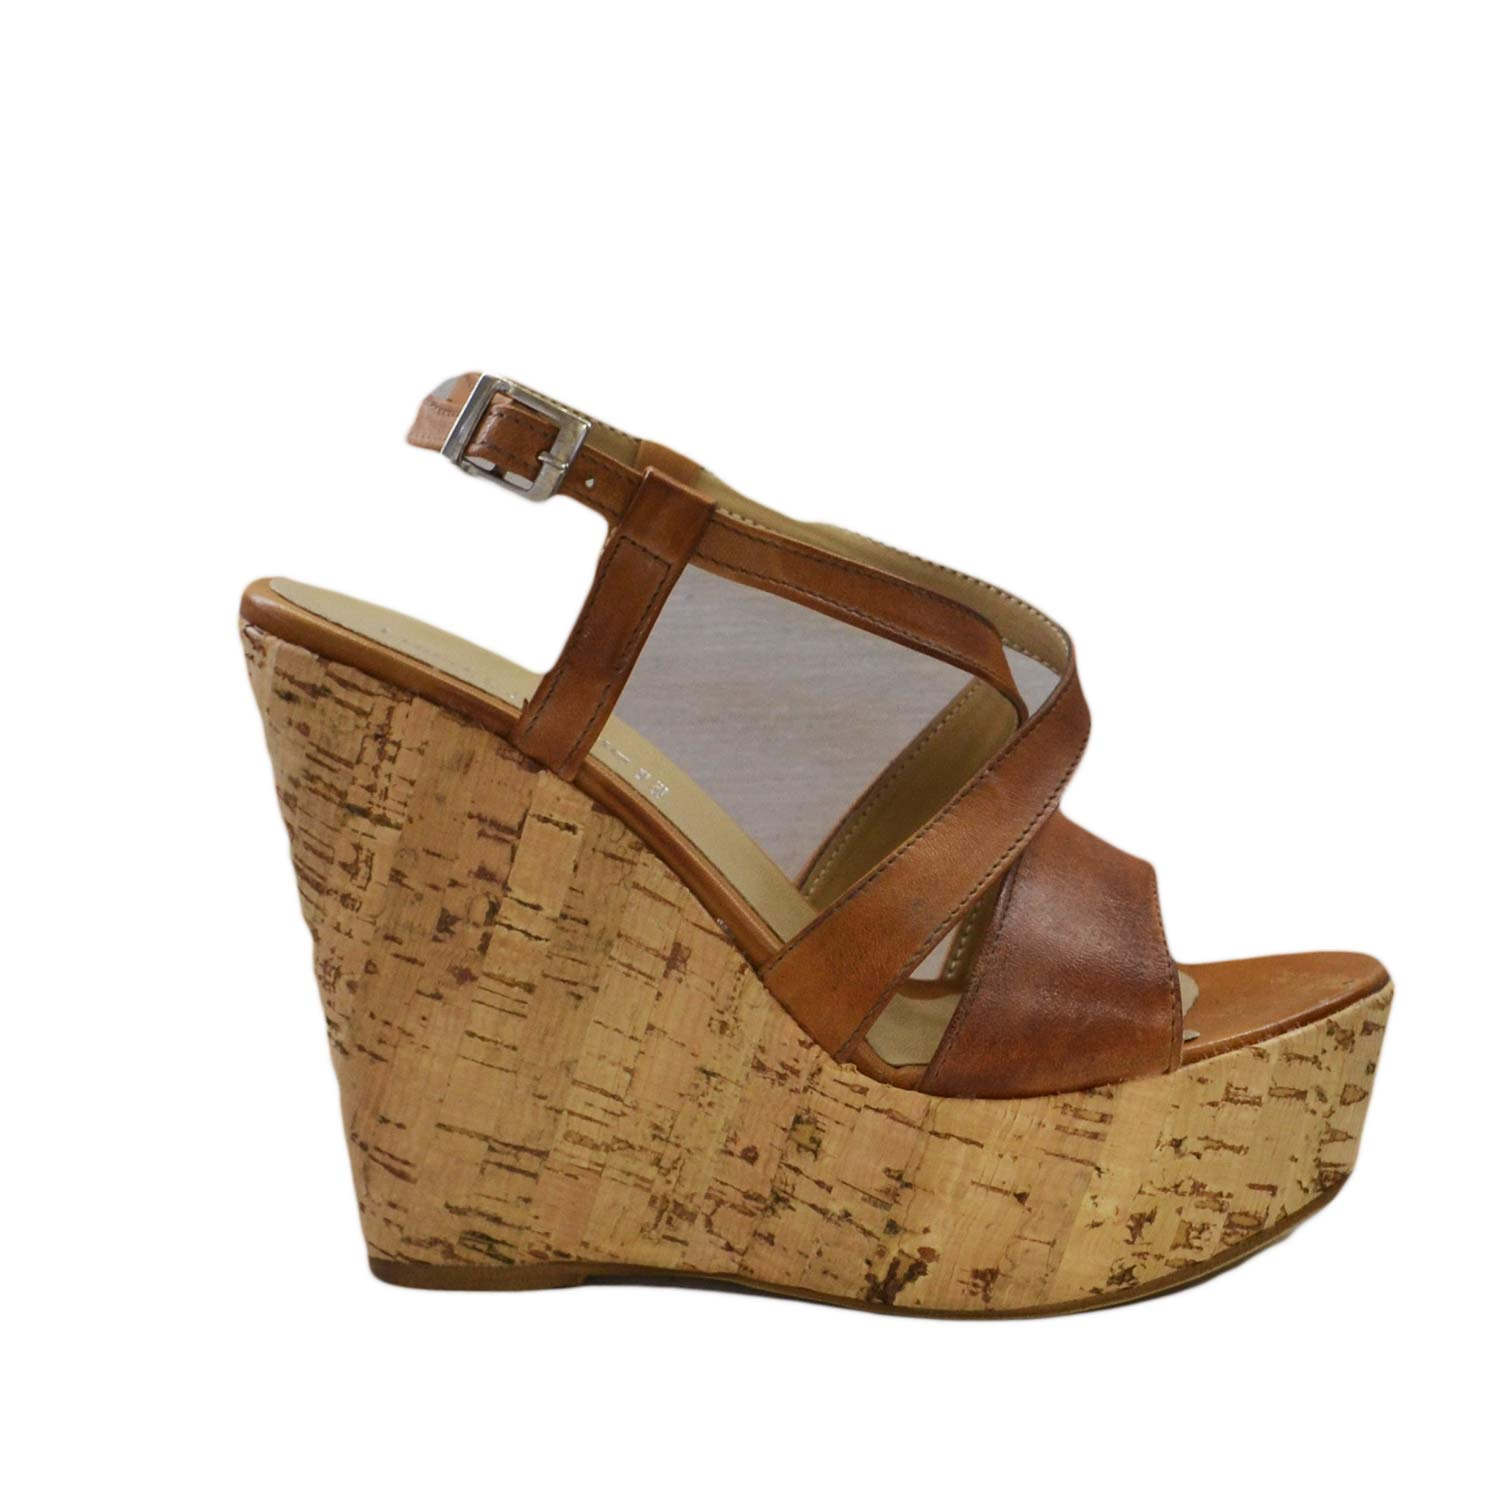 Guess Shoes Uk Online